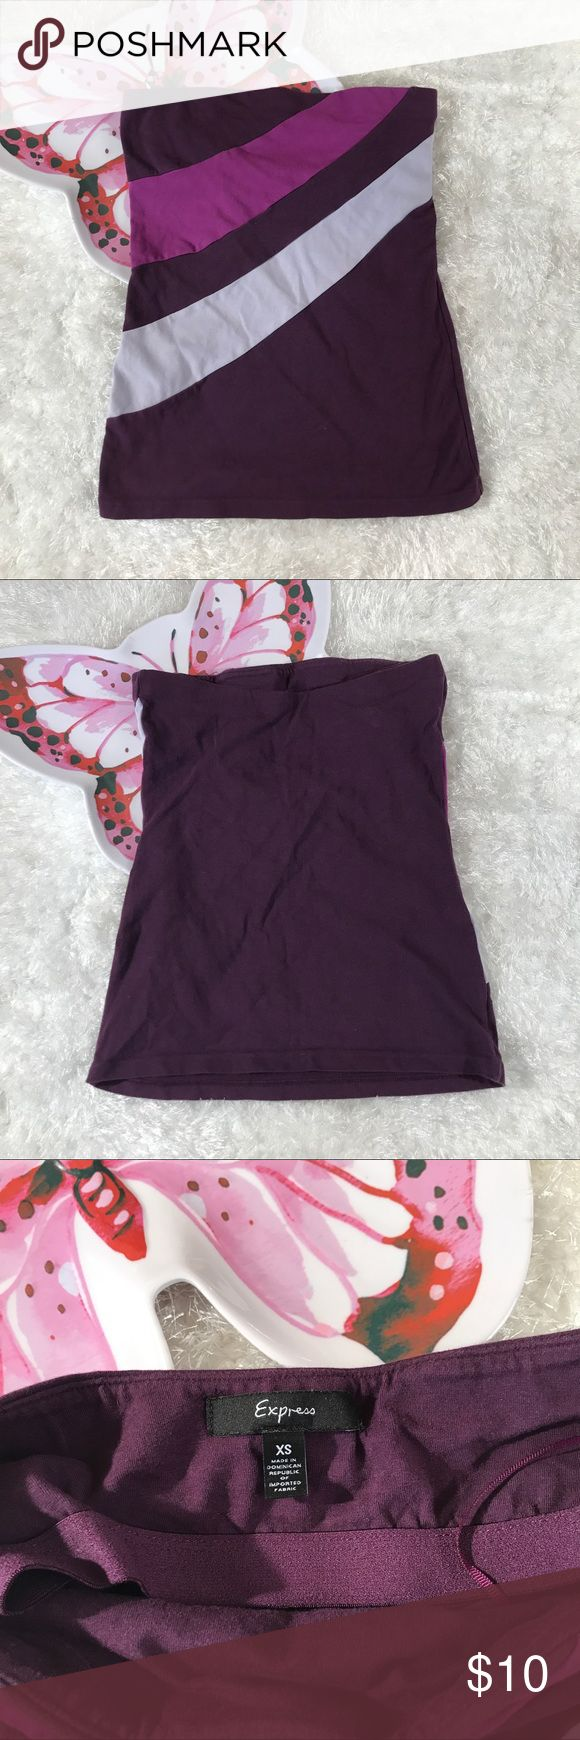 Express Asymmetrical Color Block Striped Tube Top Used in good condition. Express Tops